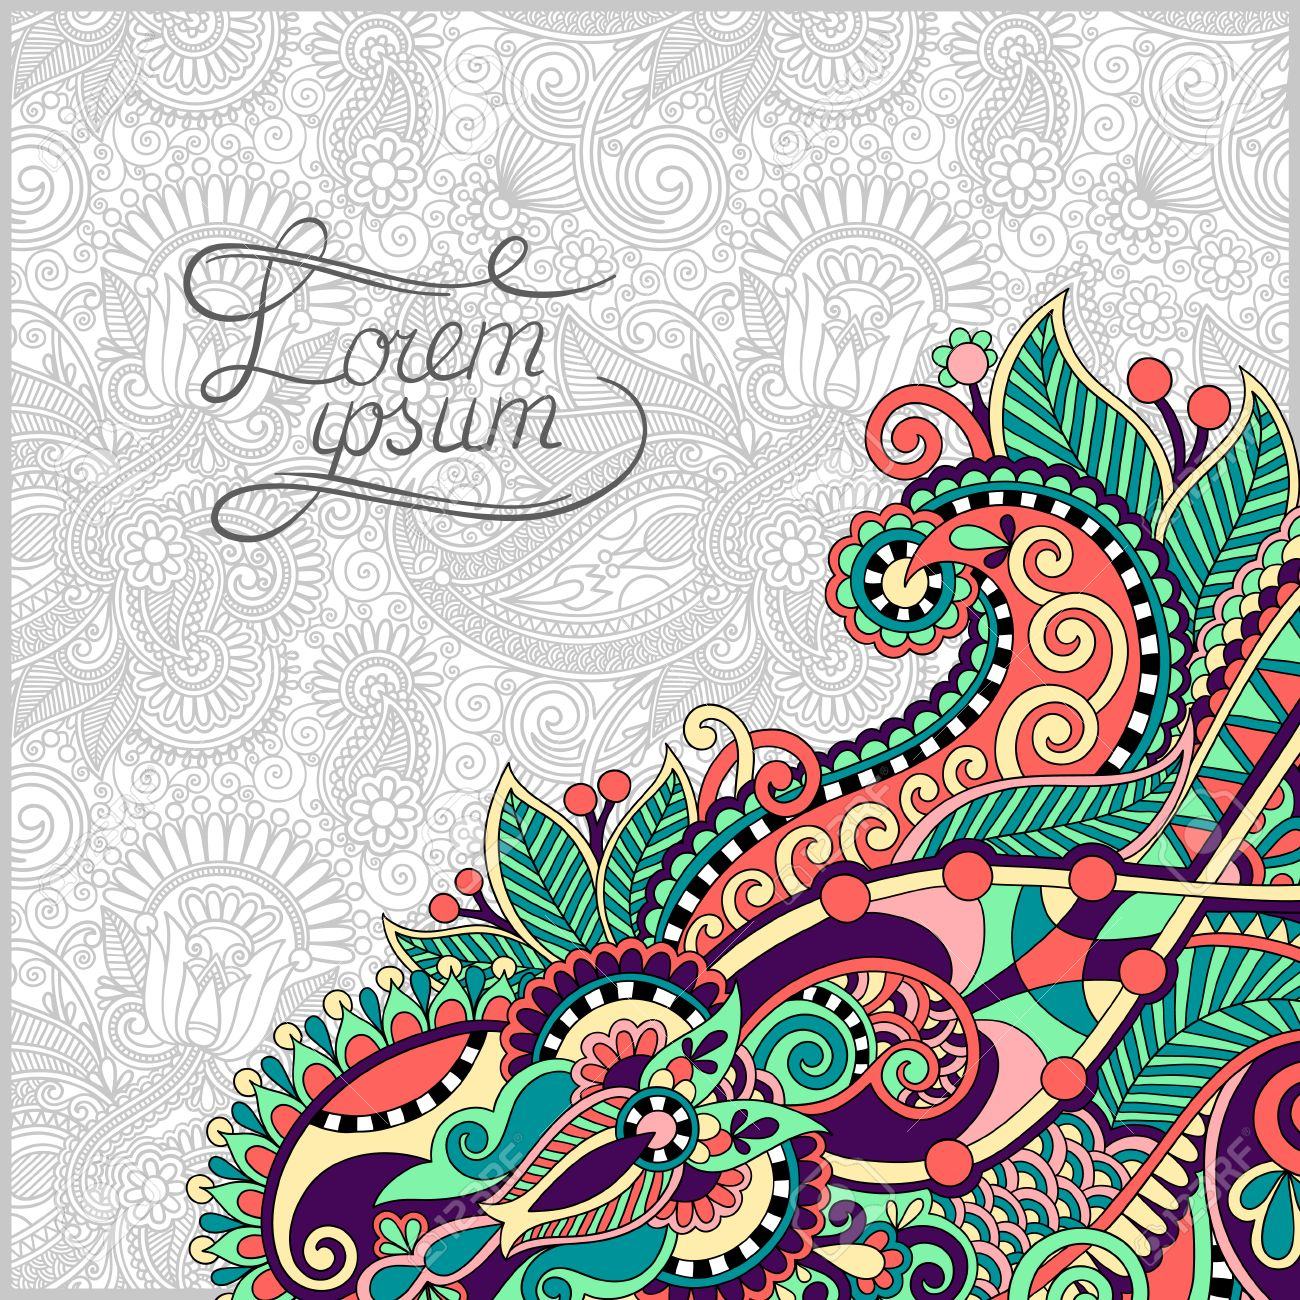 Paisley Design On Decorative Floral Background For Invitation